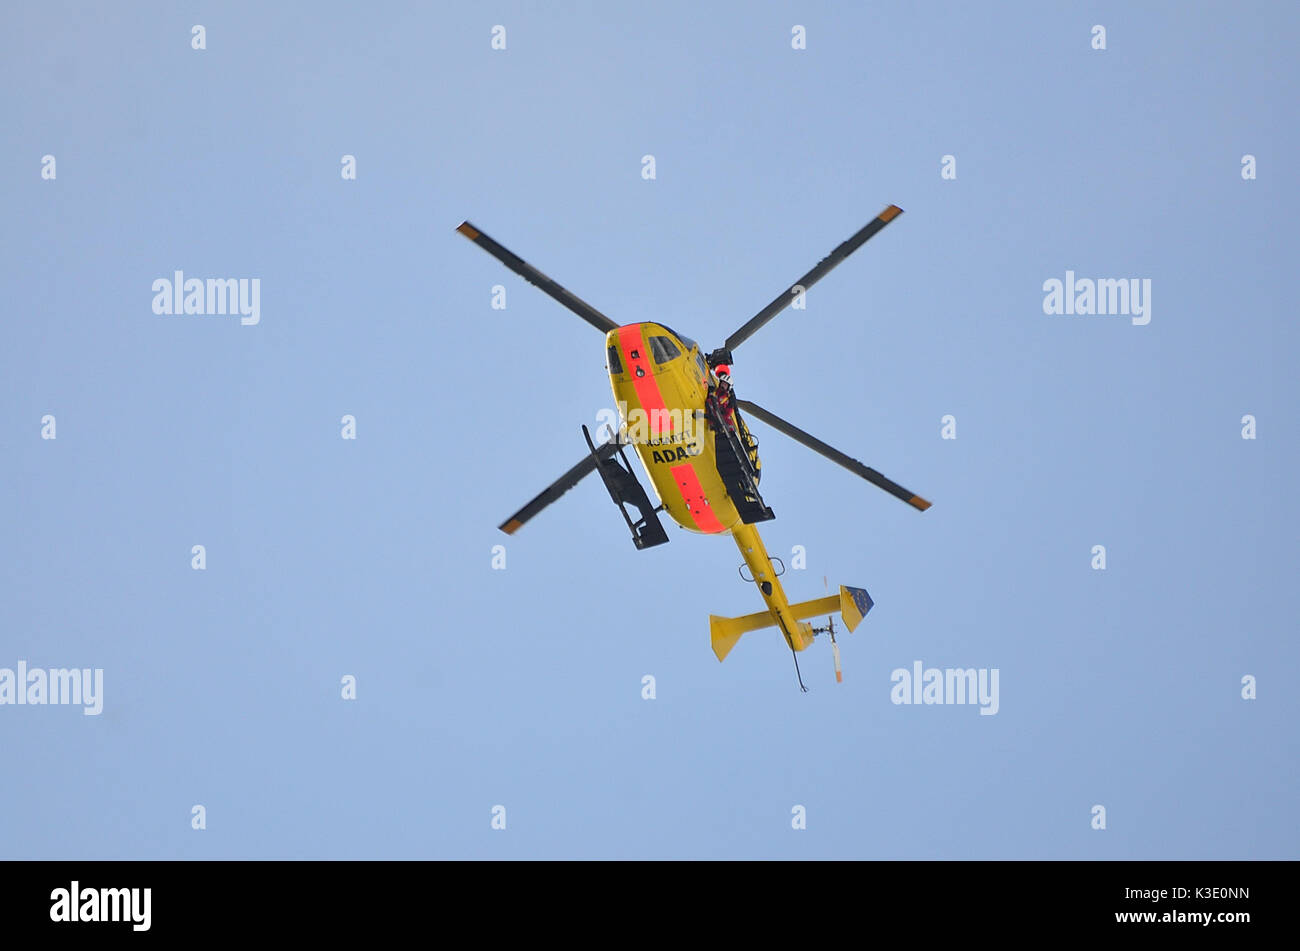 174th ahc 2015 reunion - Germany Bavaria Rescue Helicopter Aerial Rescue Stock Image